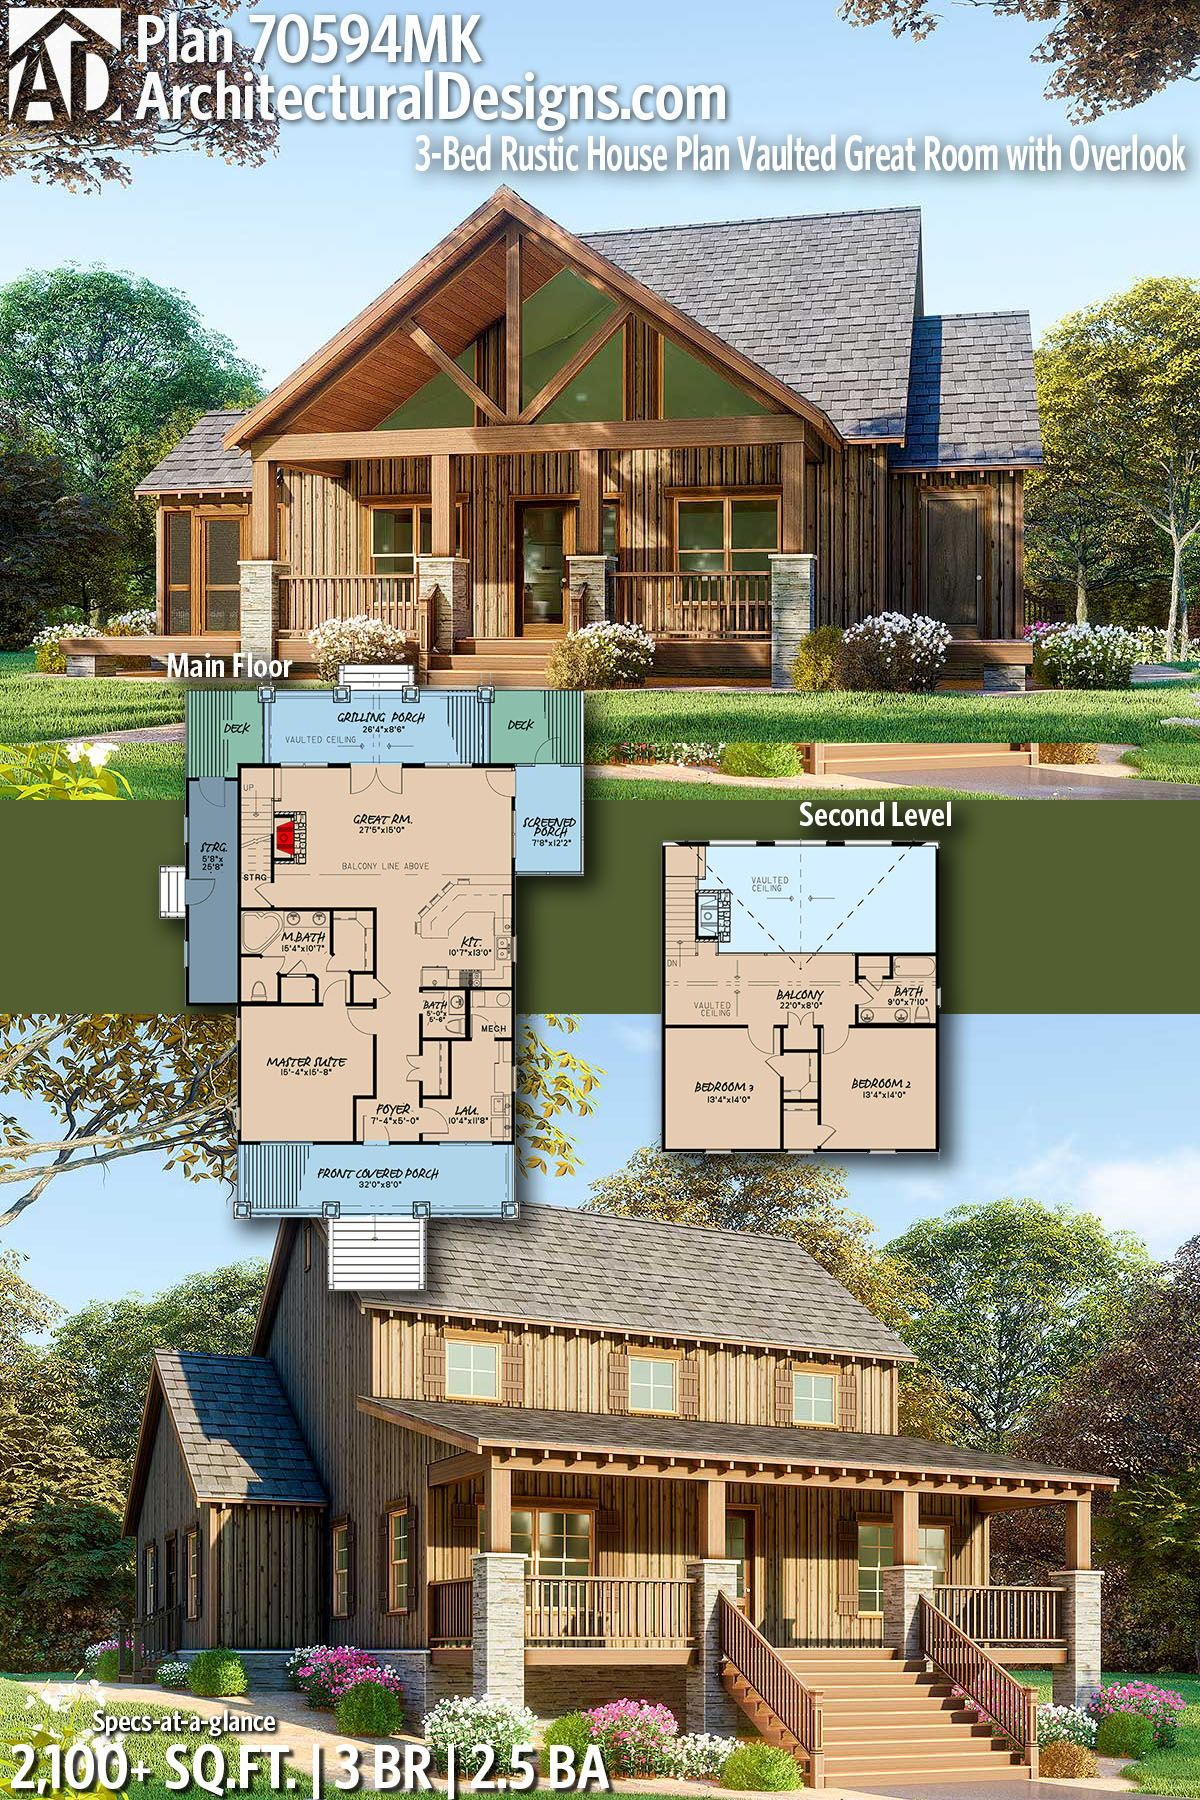 Plan 70594mk 3 Bed Rustic House Plan Vaulted Great Room With Overlook Rustic House Plans Rustic House House Plans